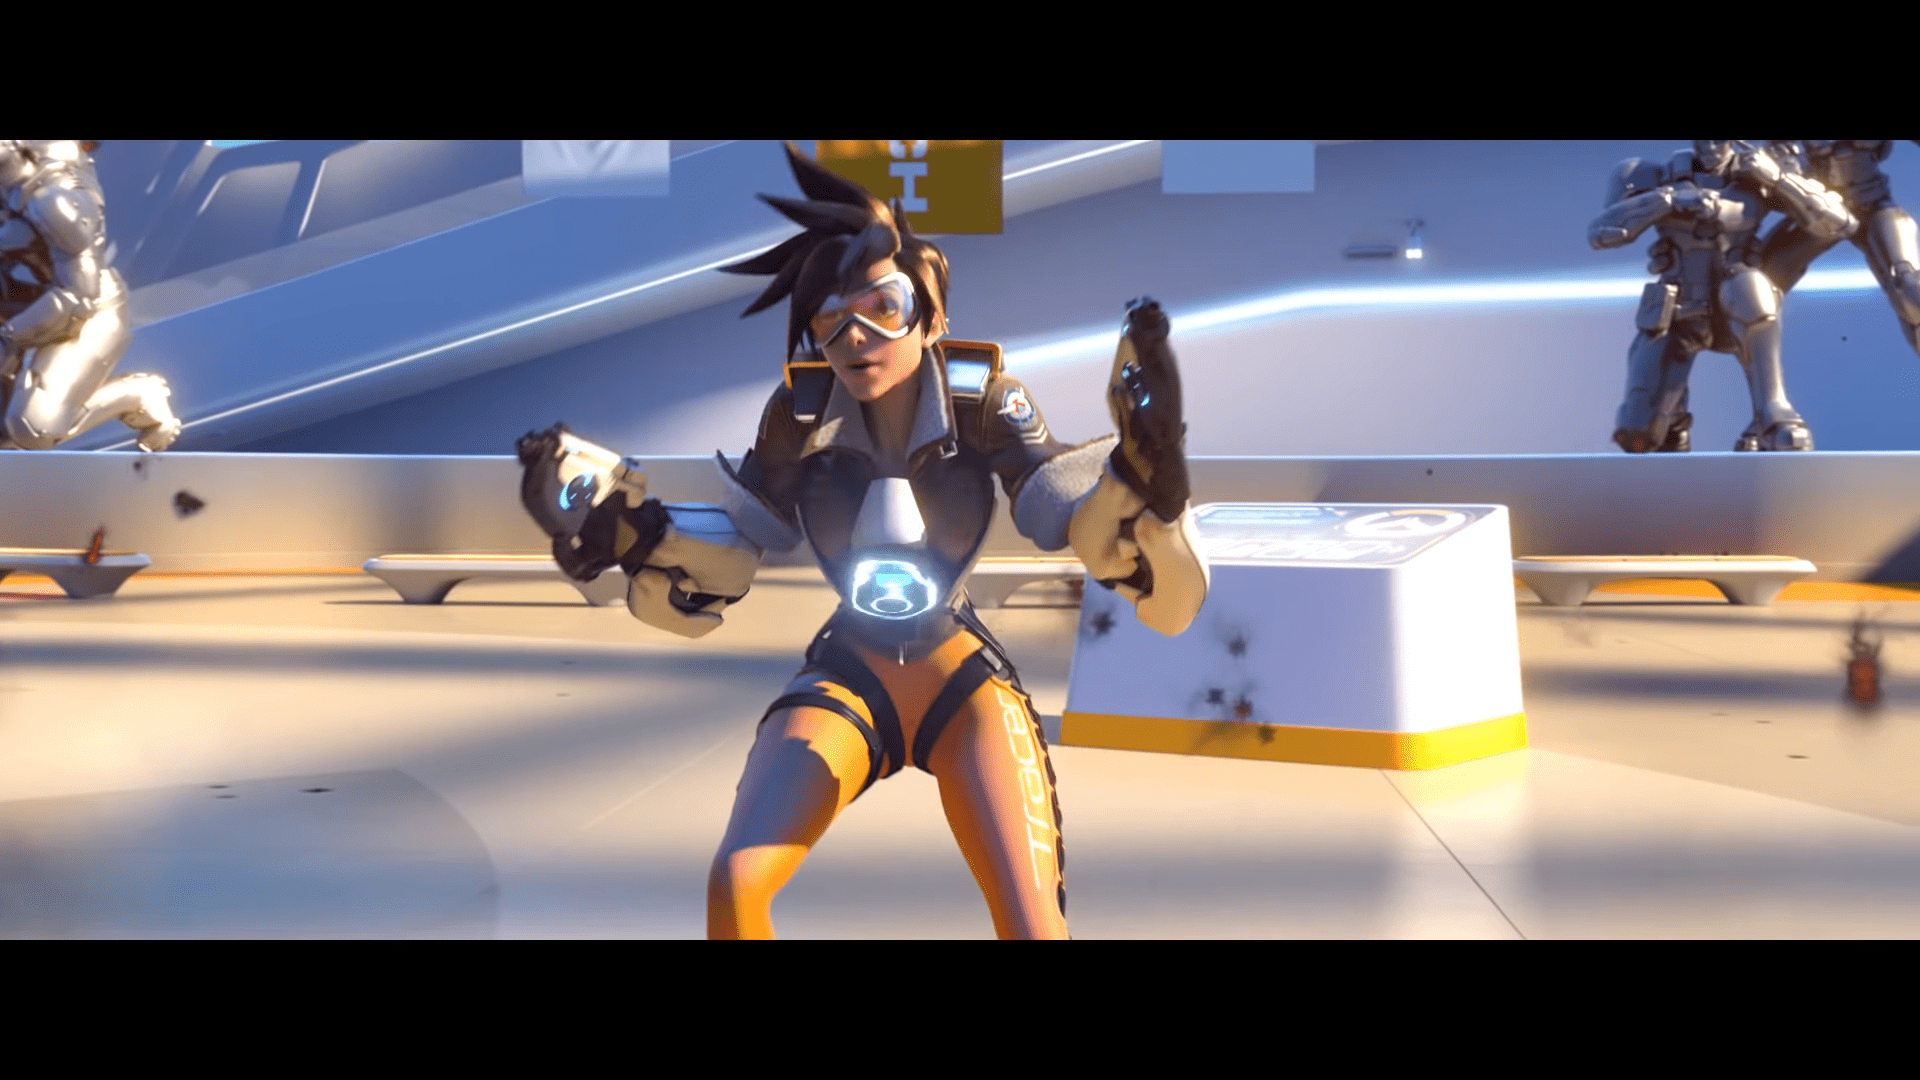 Overwatch Is Temporarily Free To Play Until December 4th With All Heroes And Maps